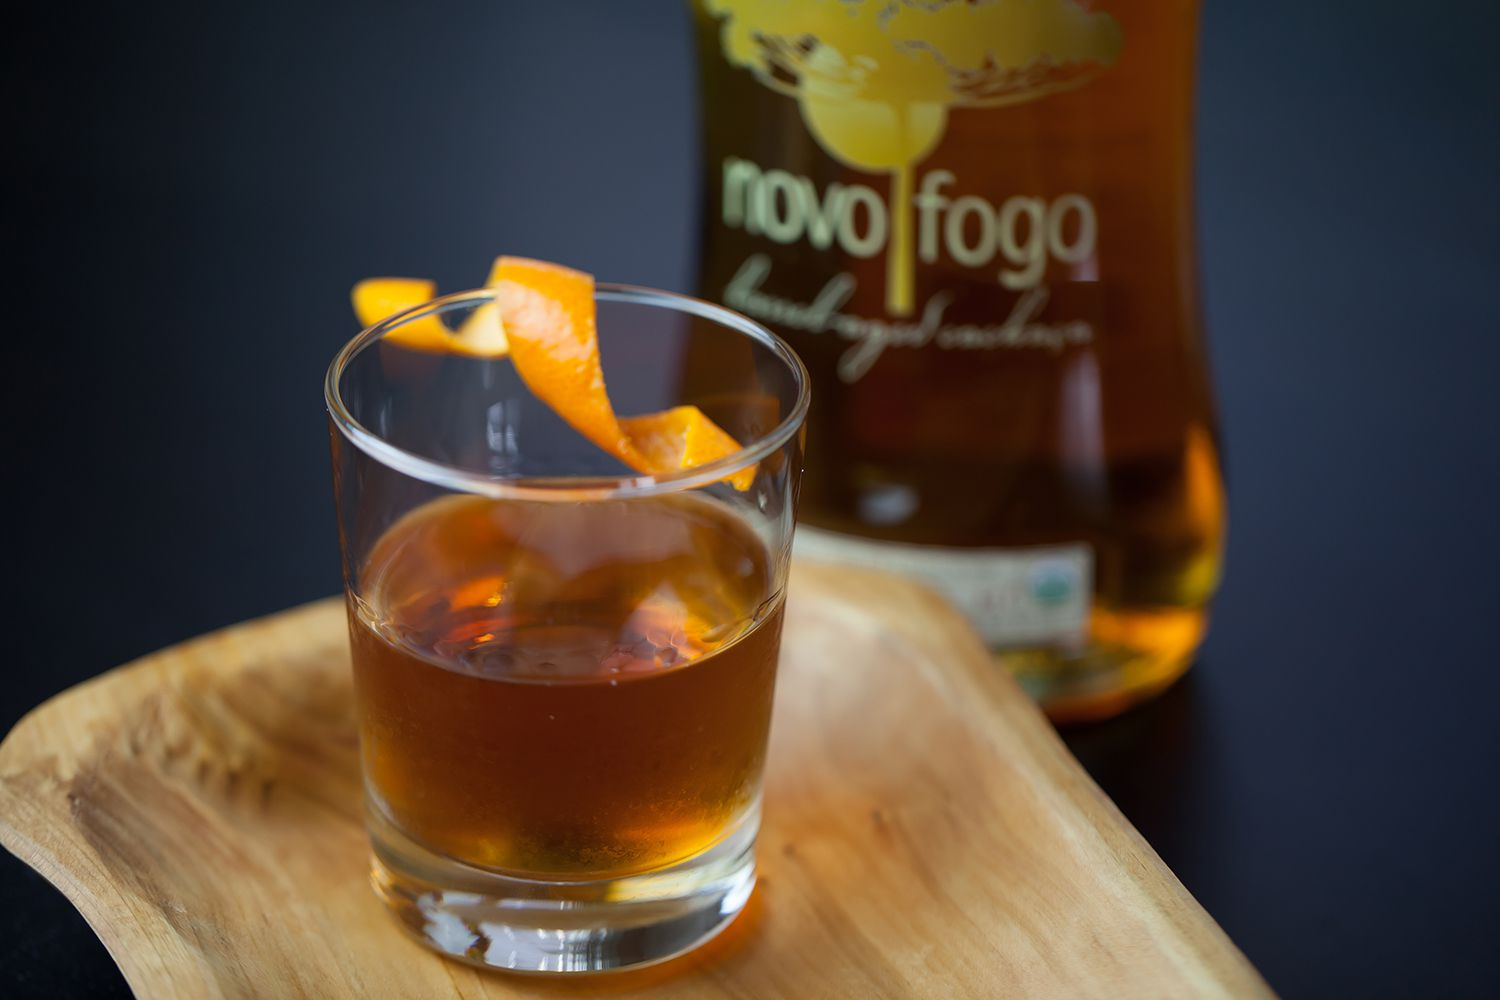 Novo Fogo Barrel Aged Cachaca and My Sherry Amor Cocktail